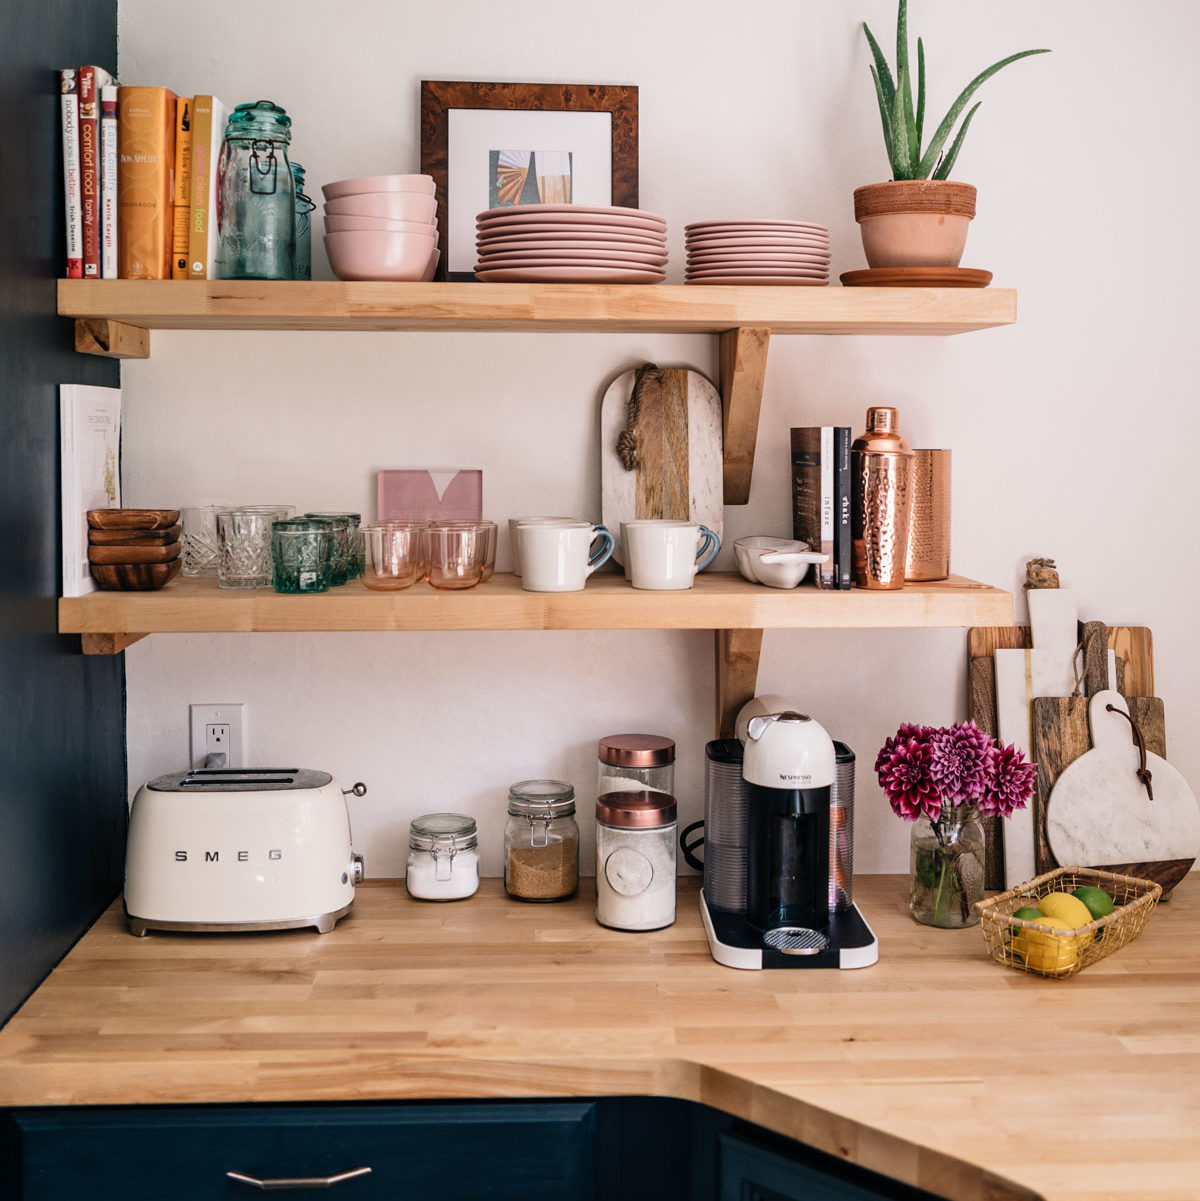 Jess Ann Kirby styles her kitchen open shelving with pops of pink and bright colors